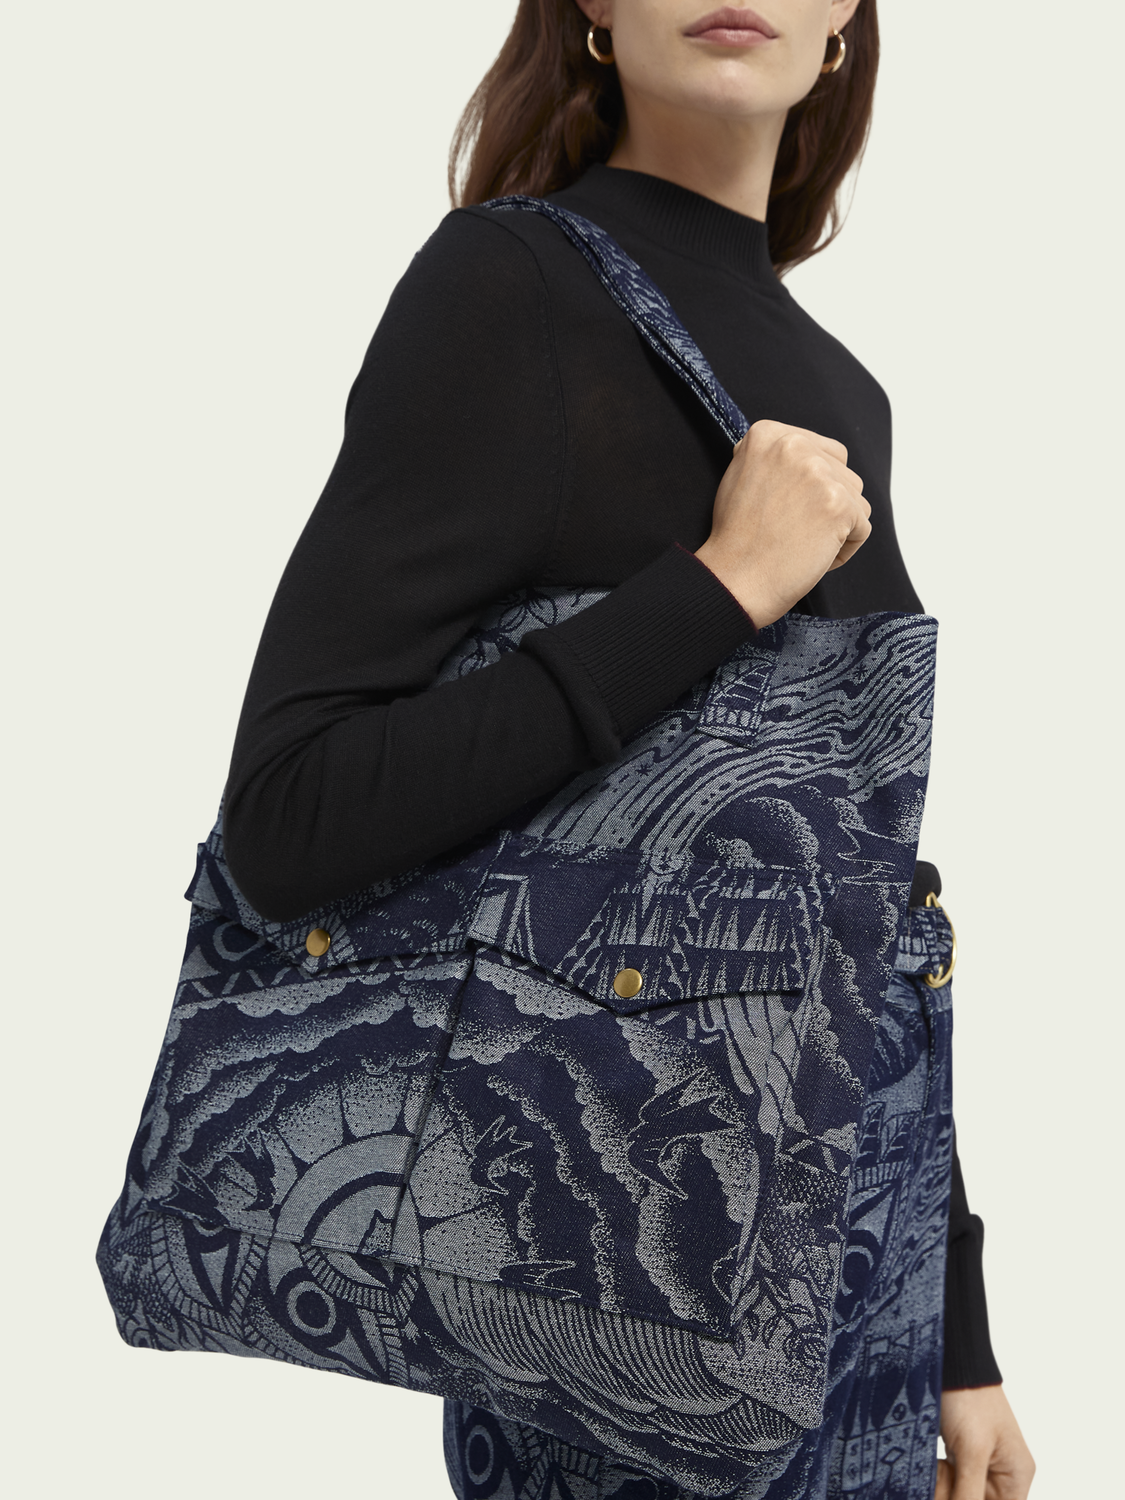 Women Jacquard artwork tote bag